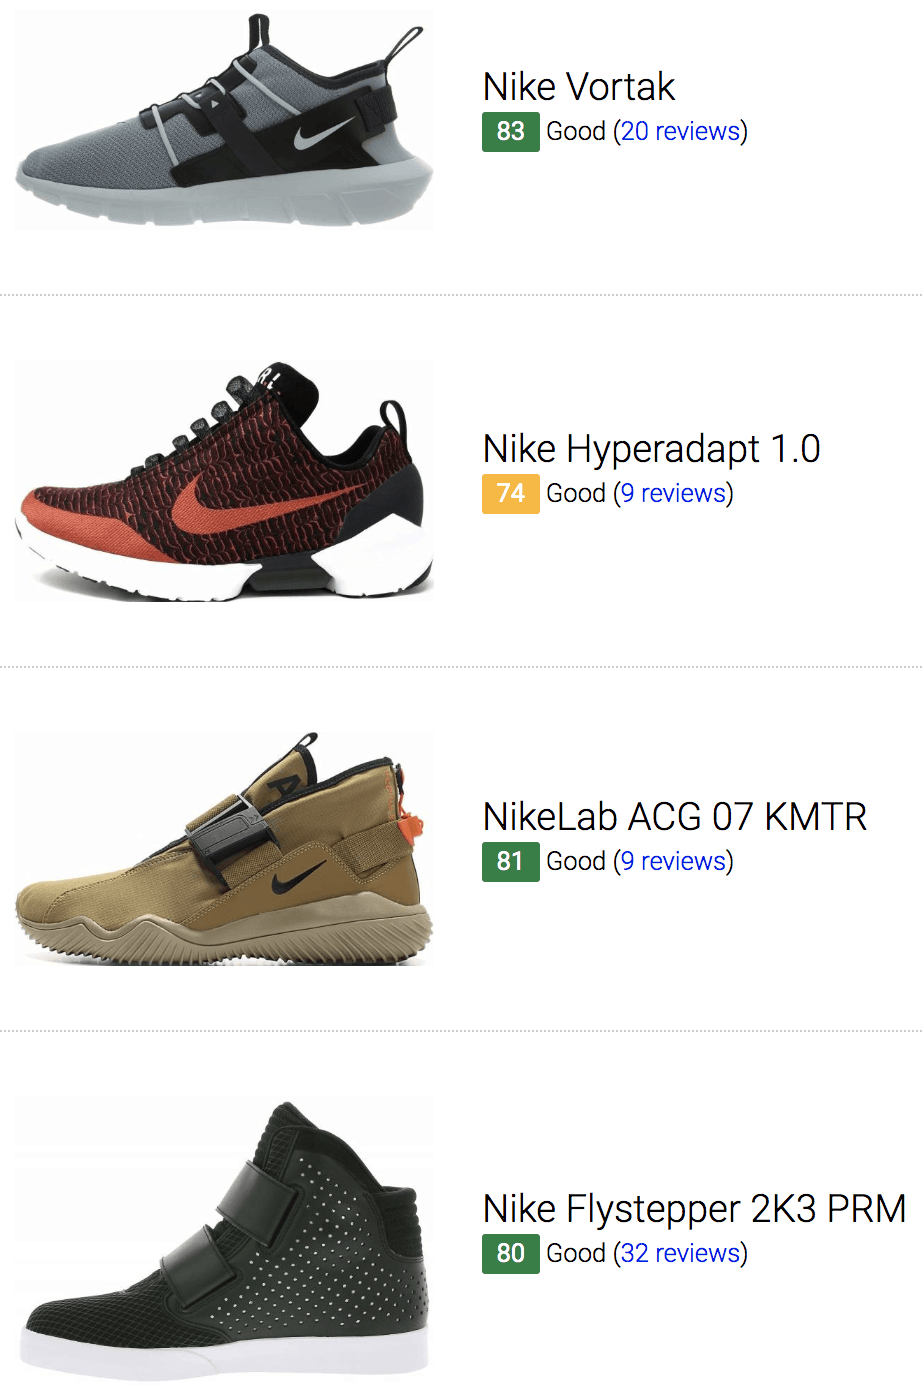 algo fibra ambulancia  Save 26% on Nike Casual Sneakers (21 Models in Stock) | RunRepeat